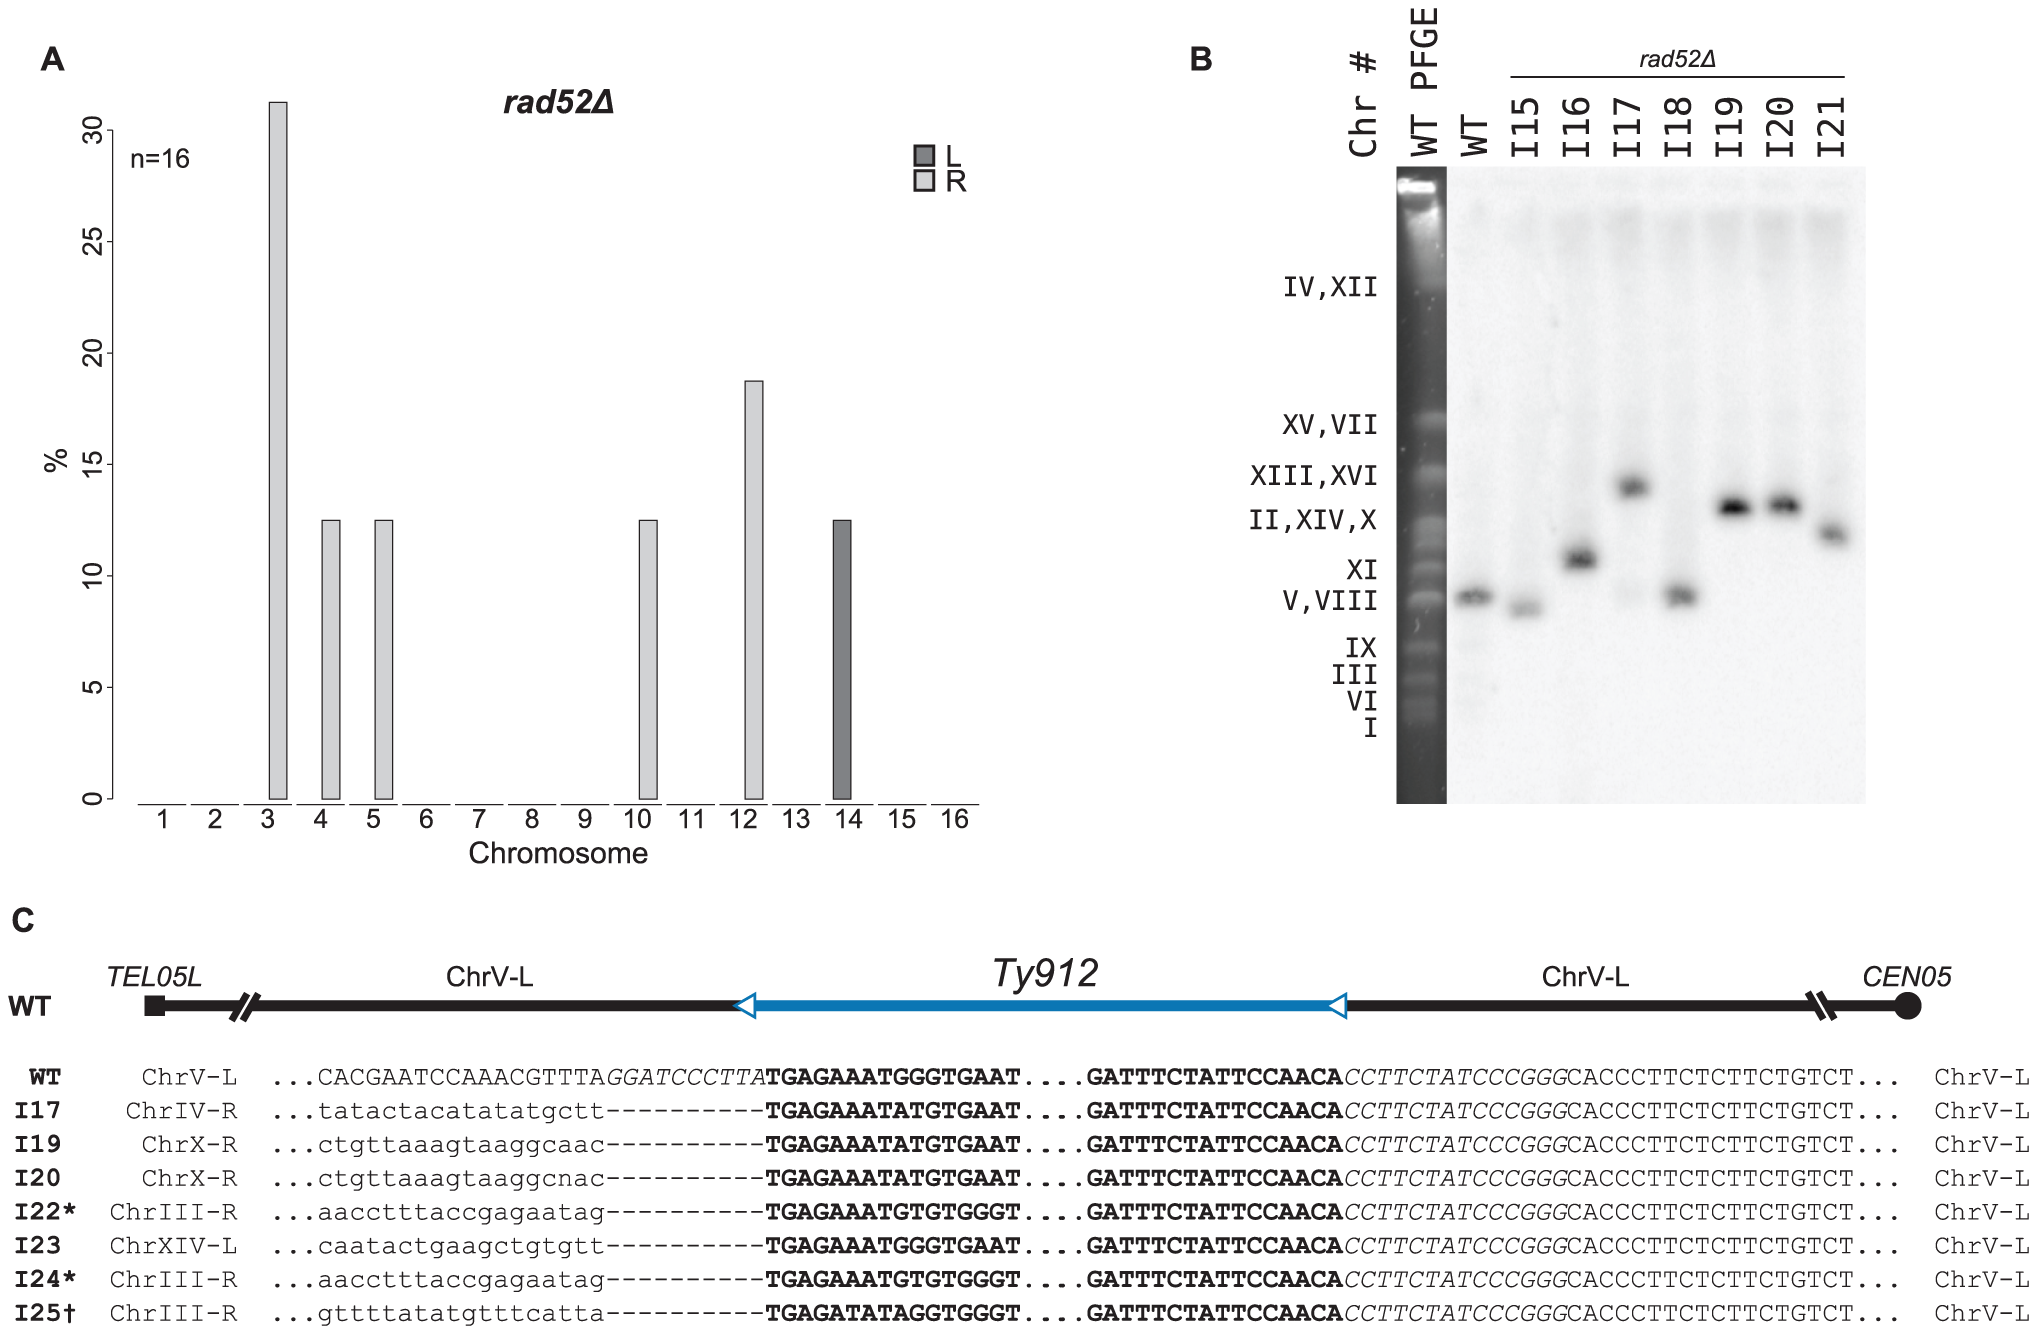 MLPA, Southern blot, and sequencing analyses of GCRs derived from a <i>rad52Δ</i> recombination-deficient mutant strain.